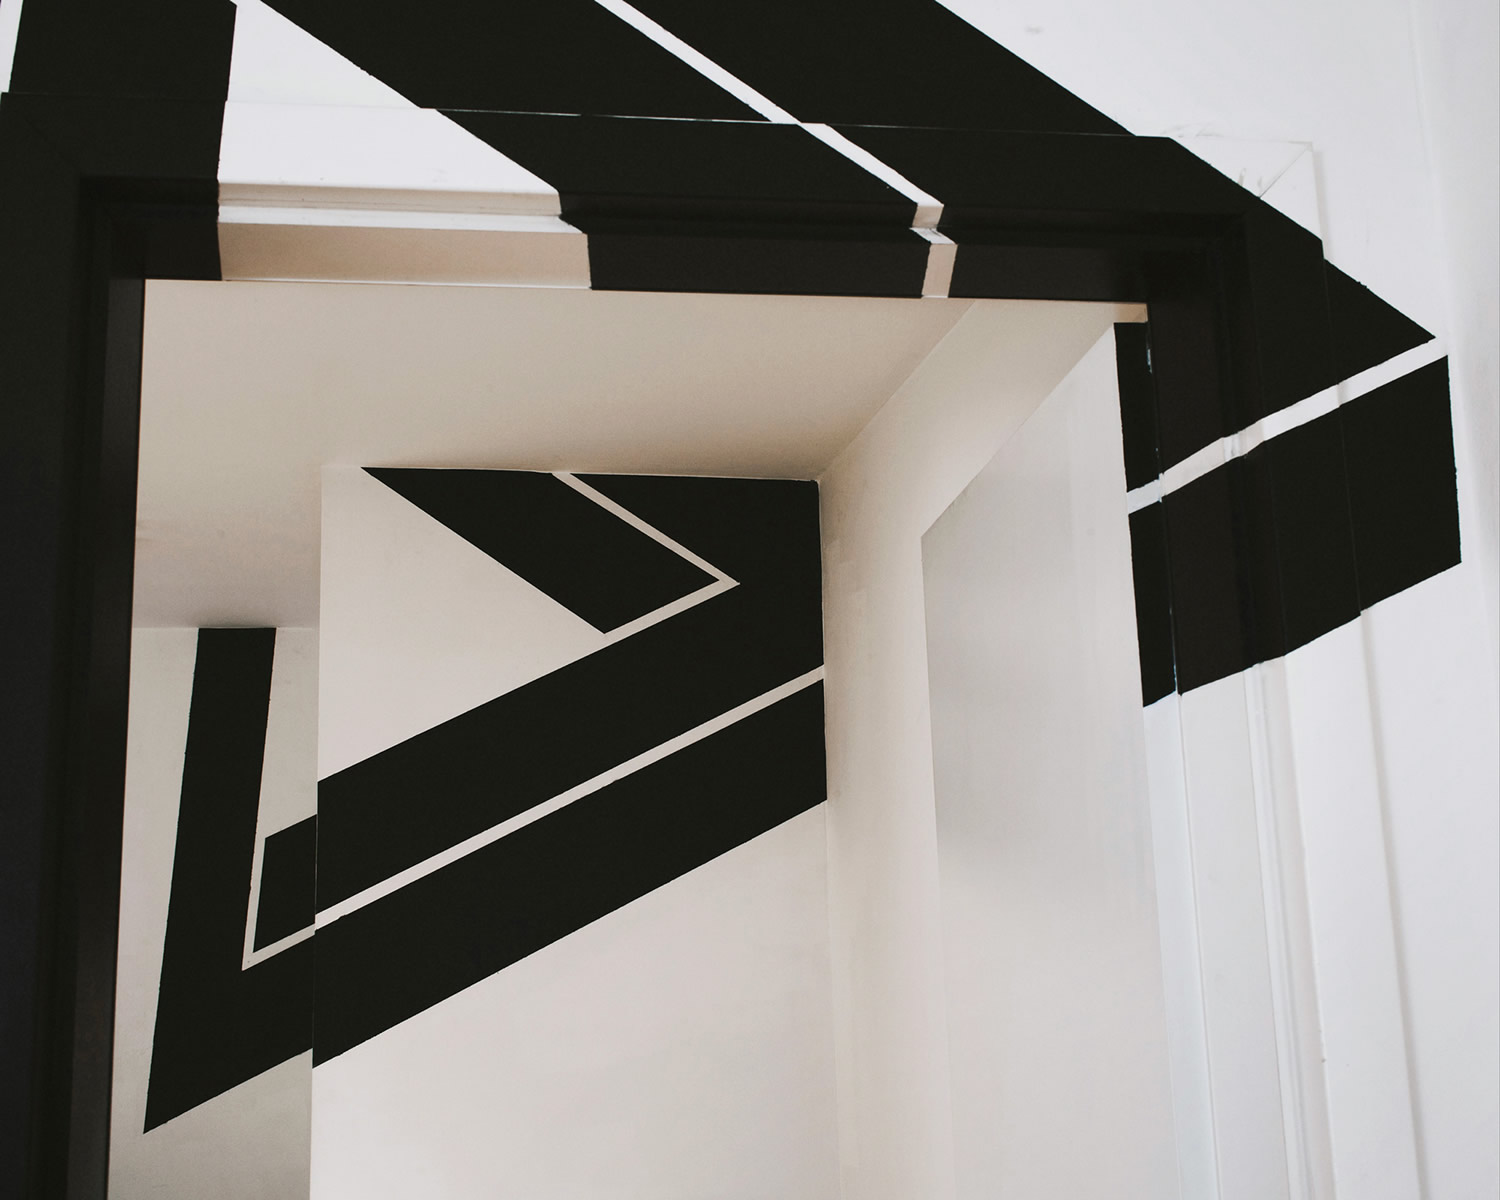 black paint penrose triangle, impossible object, Anamorphic art by fanette g.